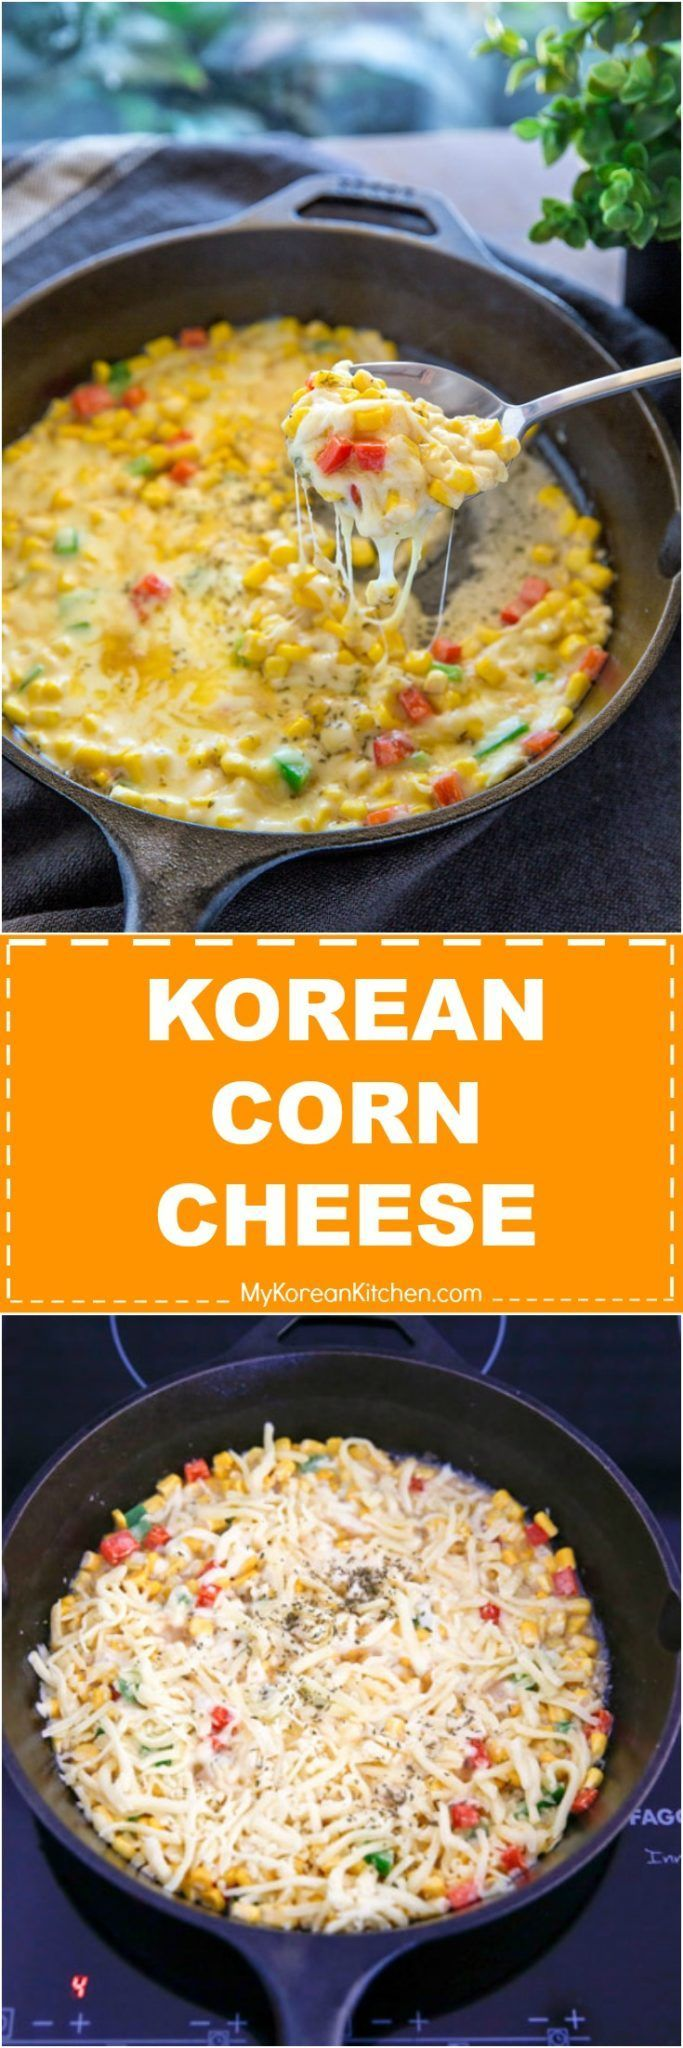 How to Make Korean Corn Cheese. It's a trendy and popular Korean appetizer! | MyKoreanKitchen.com via @mykoreankitchen